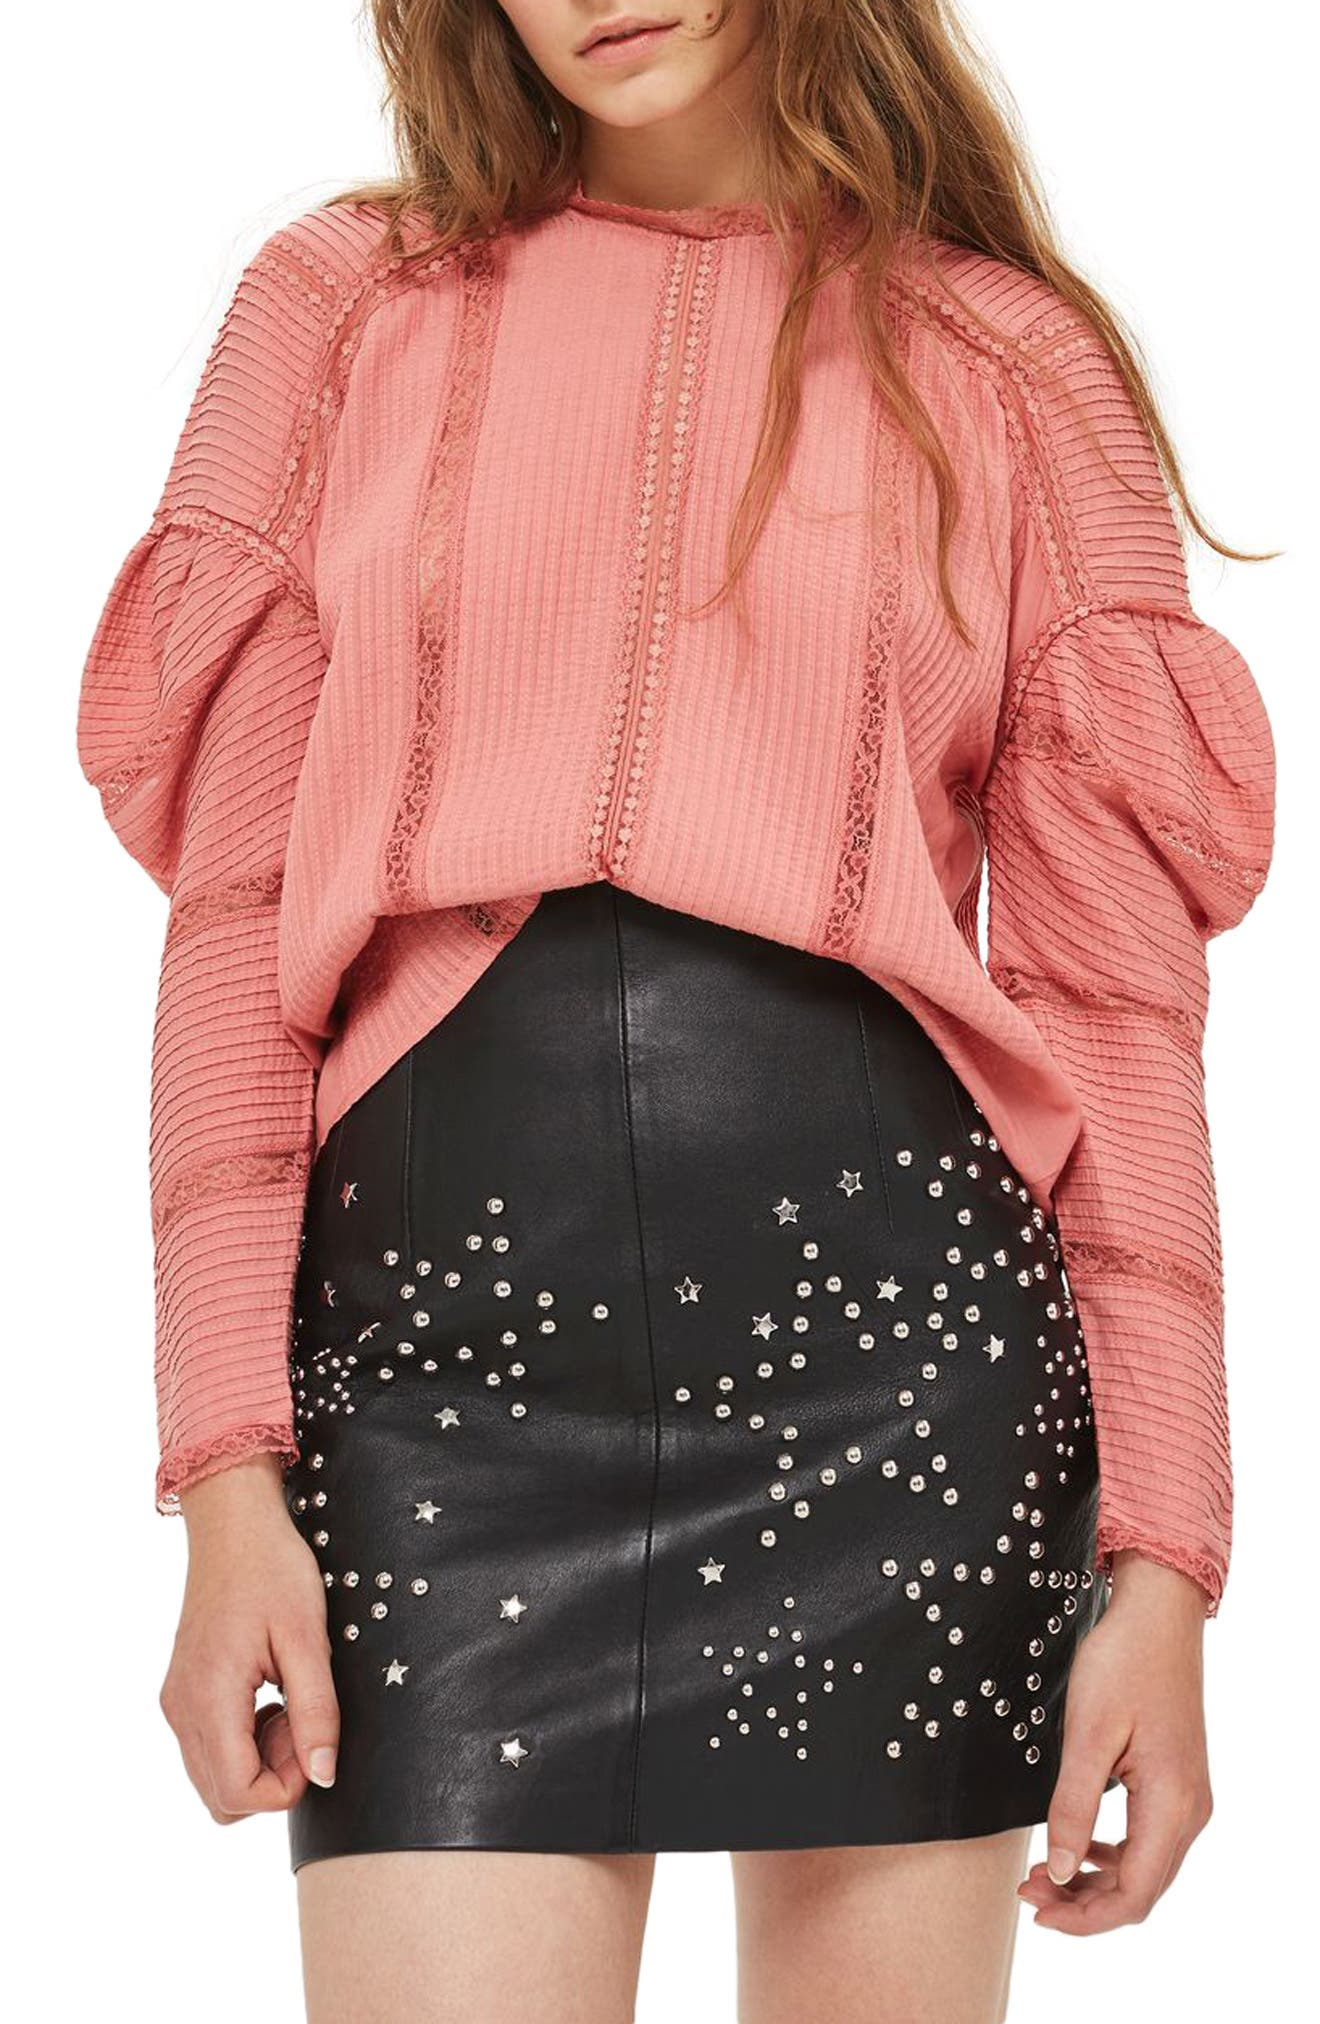 Topshop Statement Sleeve Pintuck Blouse